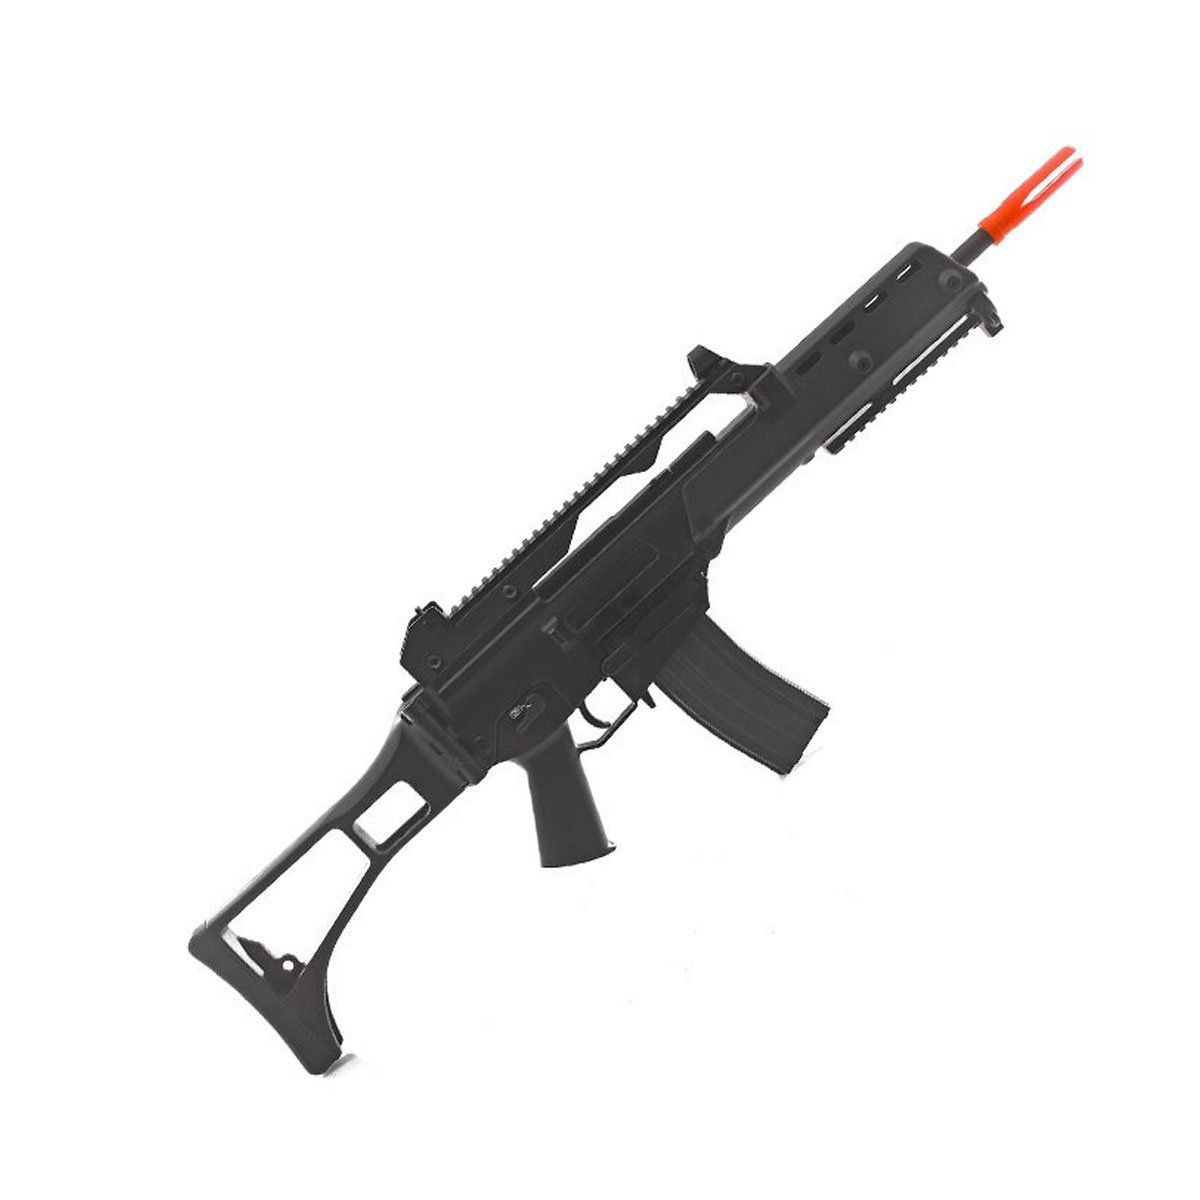 Rifle de Airsoft JG G36K G608-2 Elétrico 6mm + Kit M4 MAG